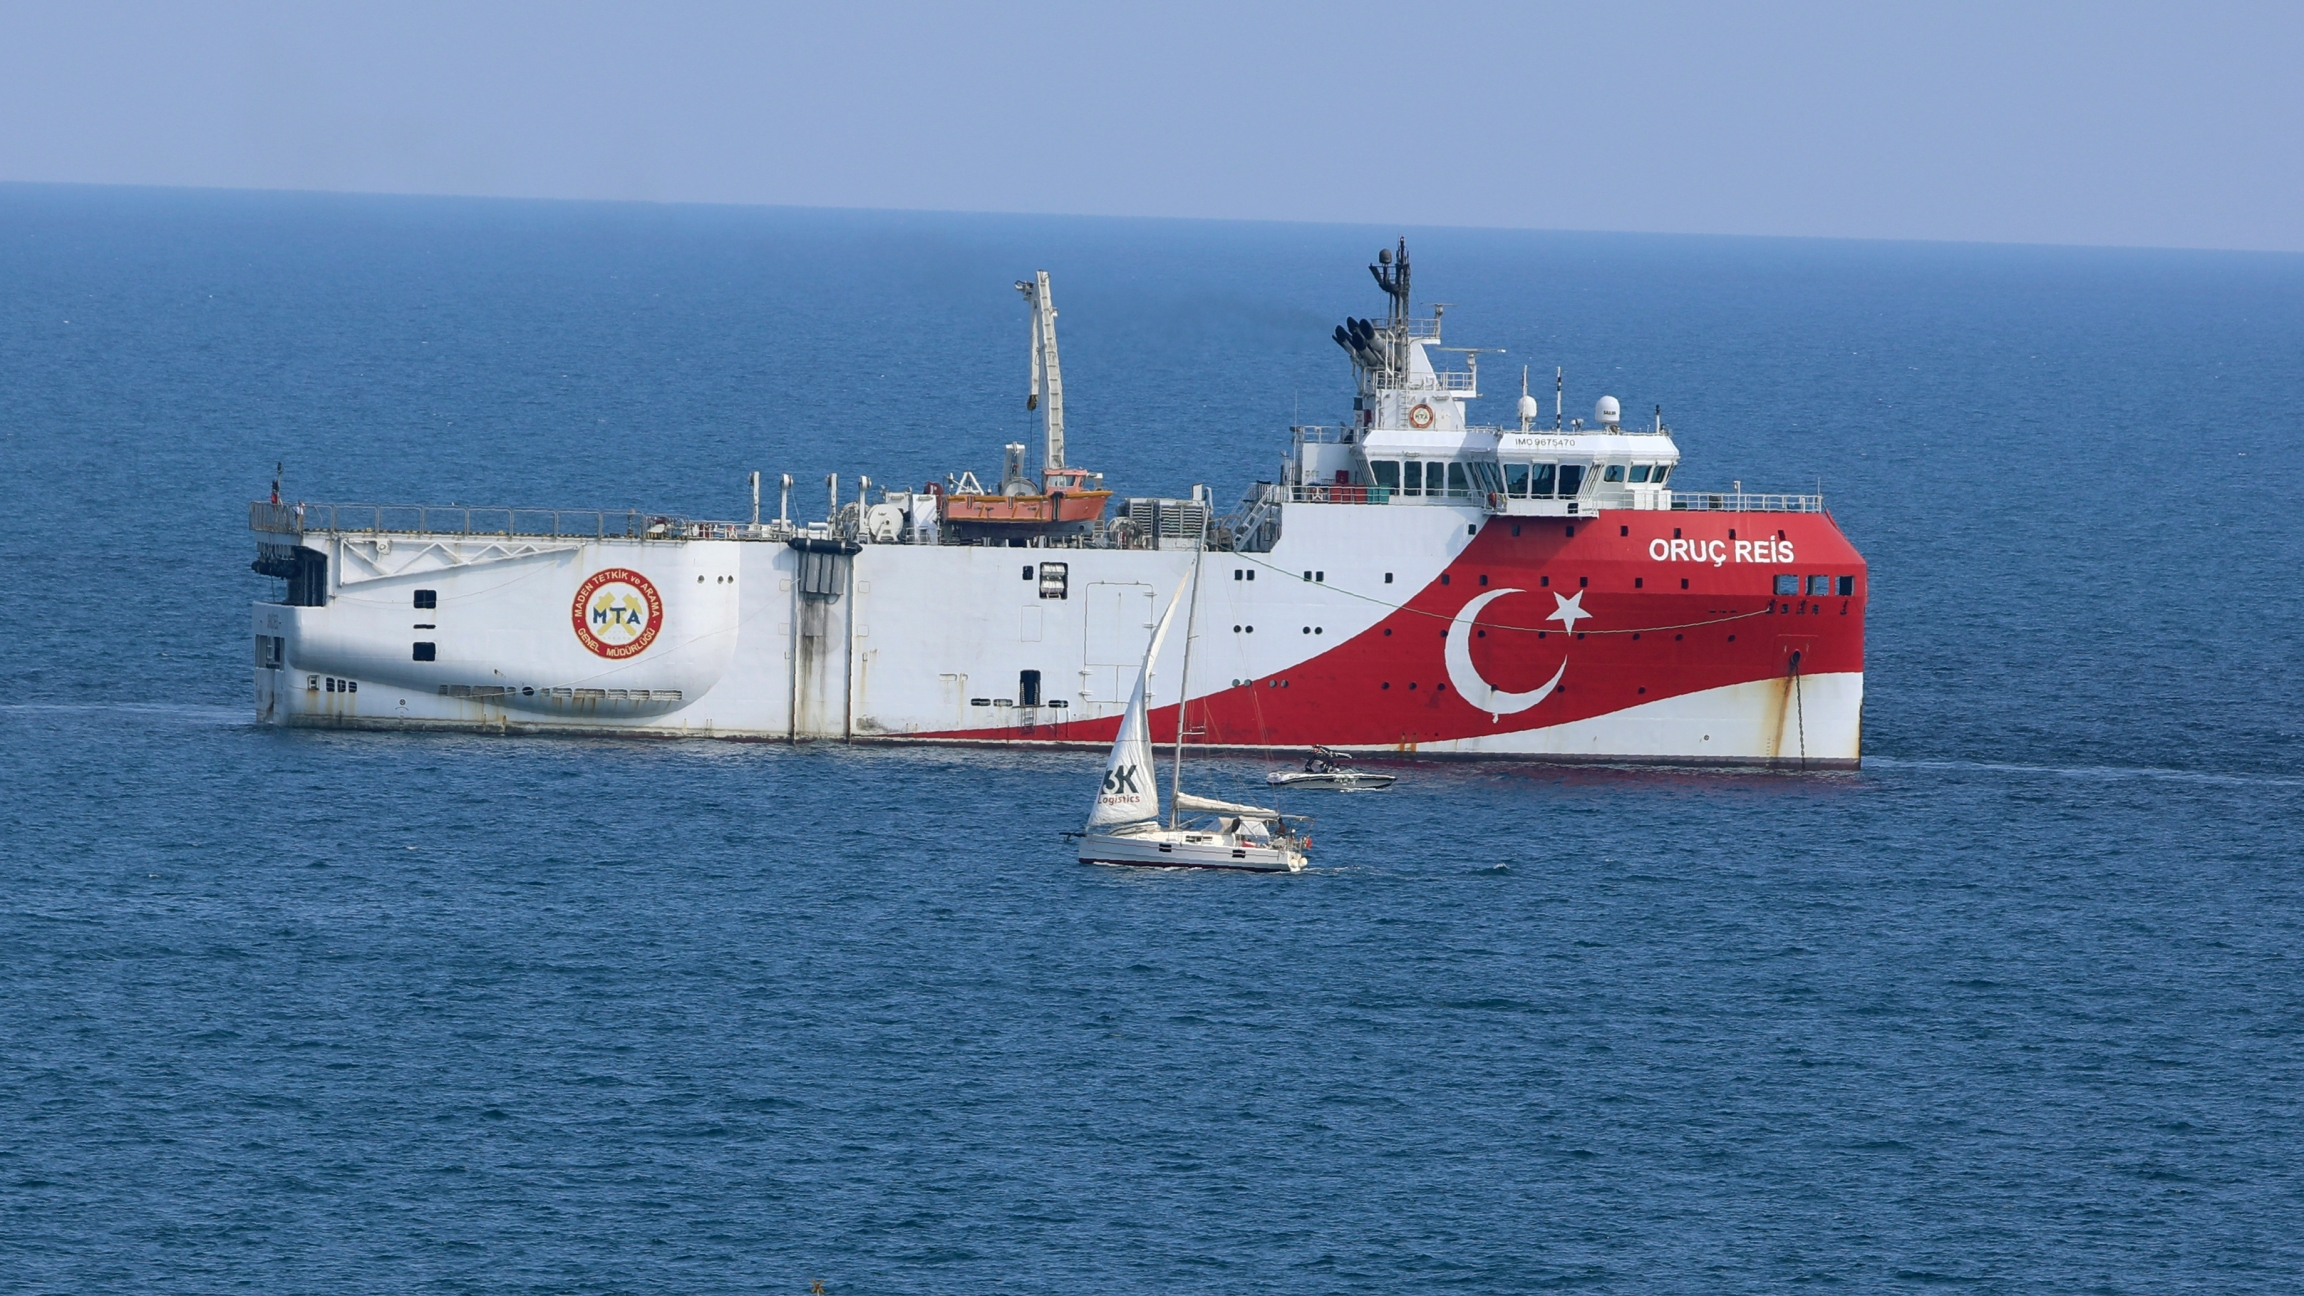 A Turkish ship with a flag sails in the eastern Mediterranean Sea